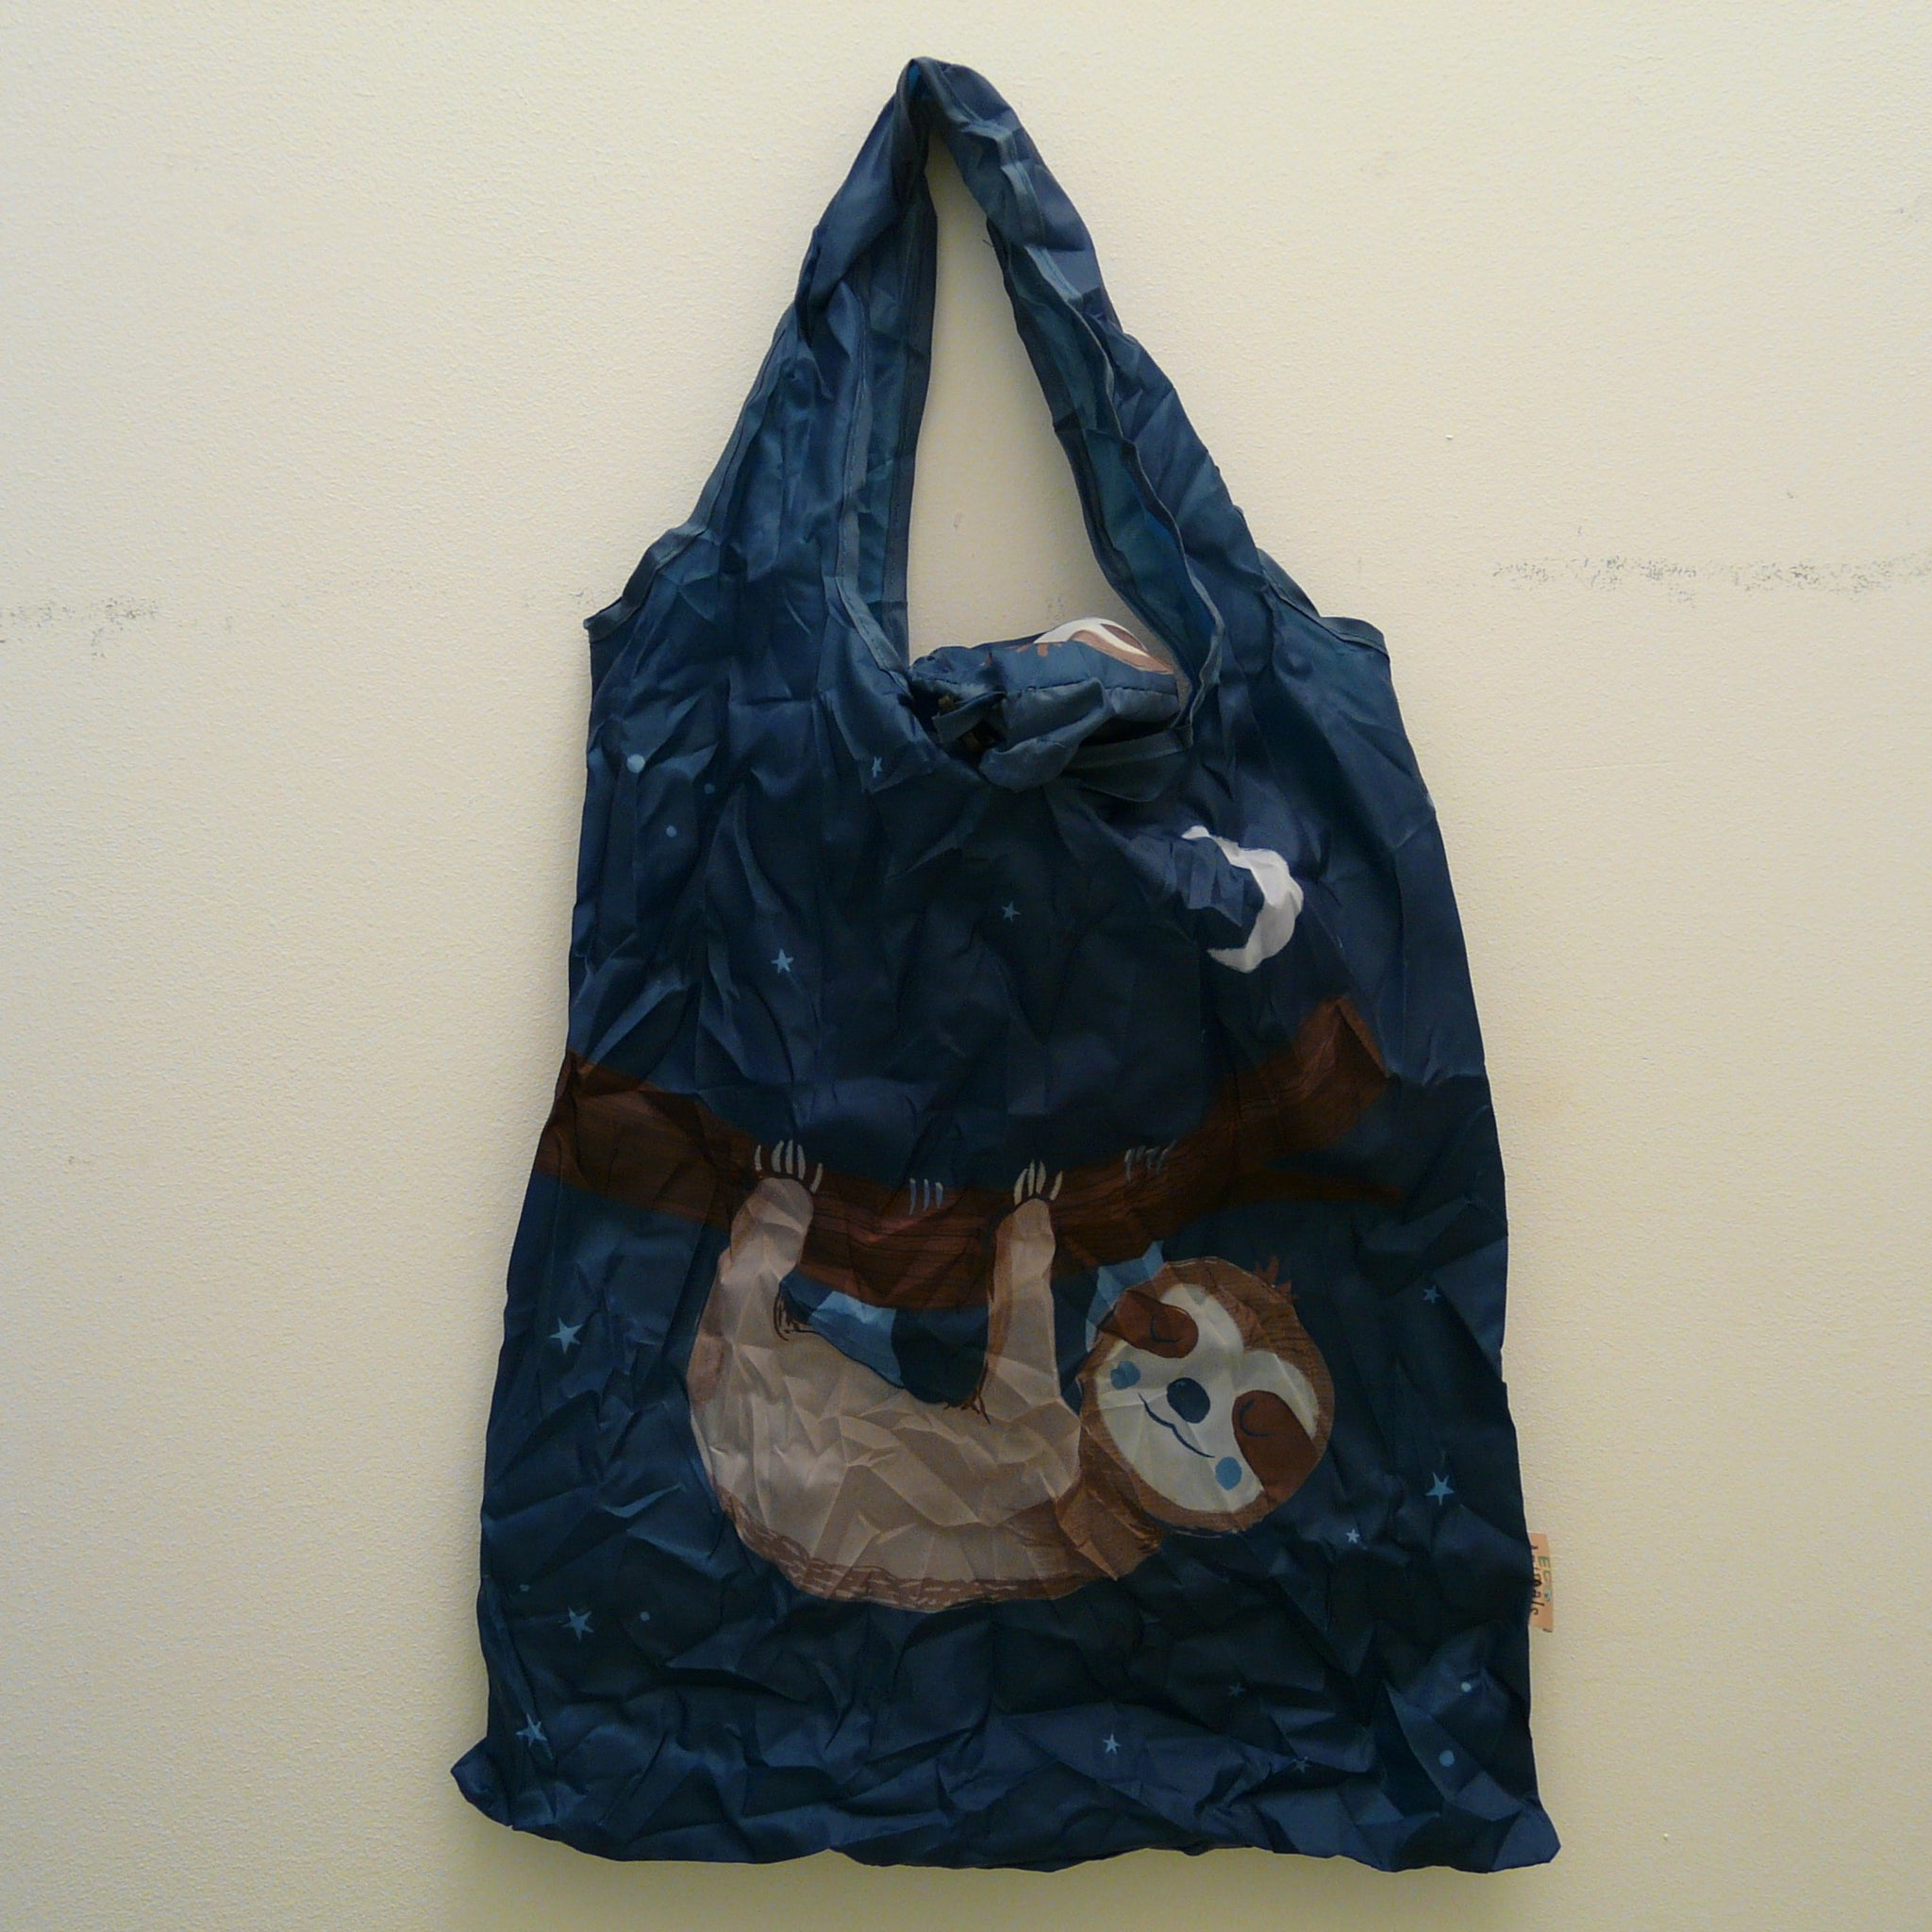 Dark blue folding bag made from recycled plastic bottles, Sloth design, with pouch